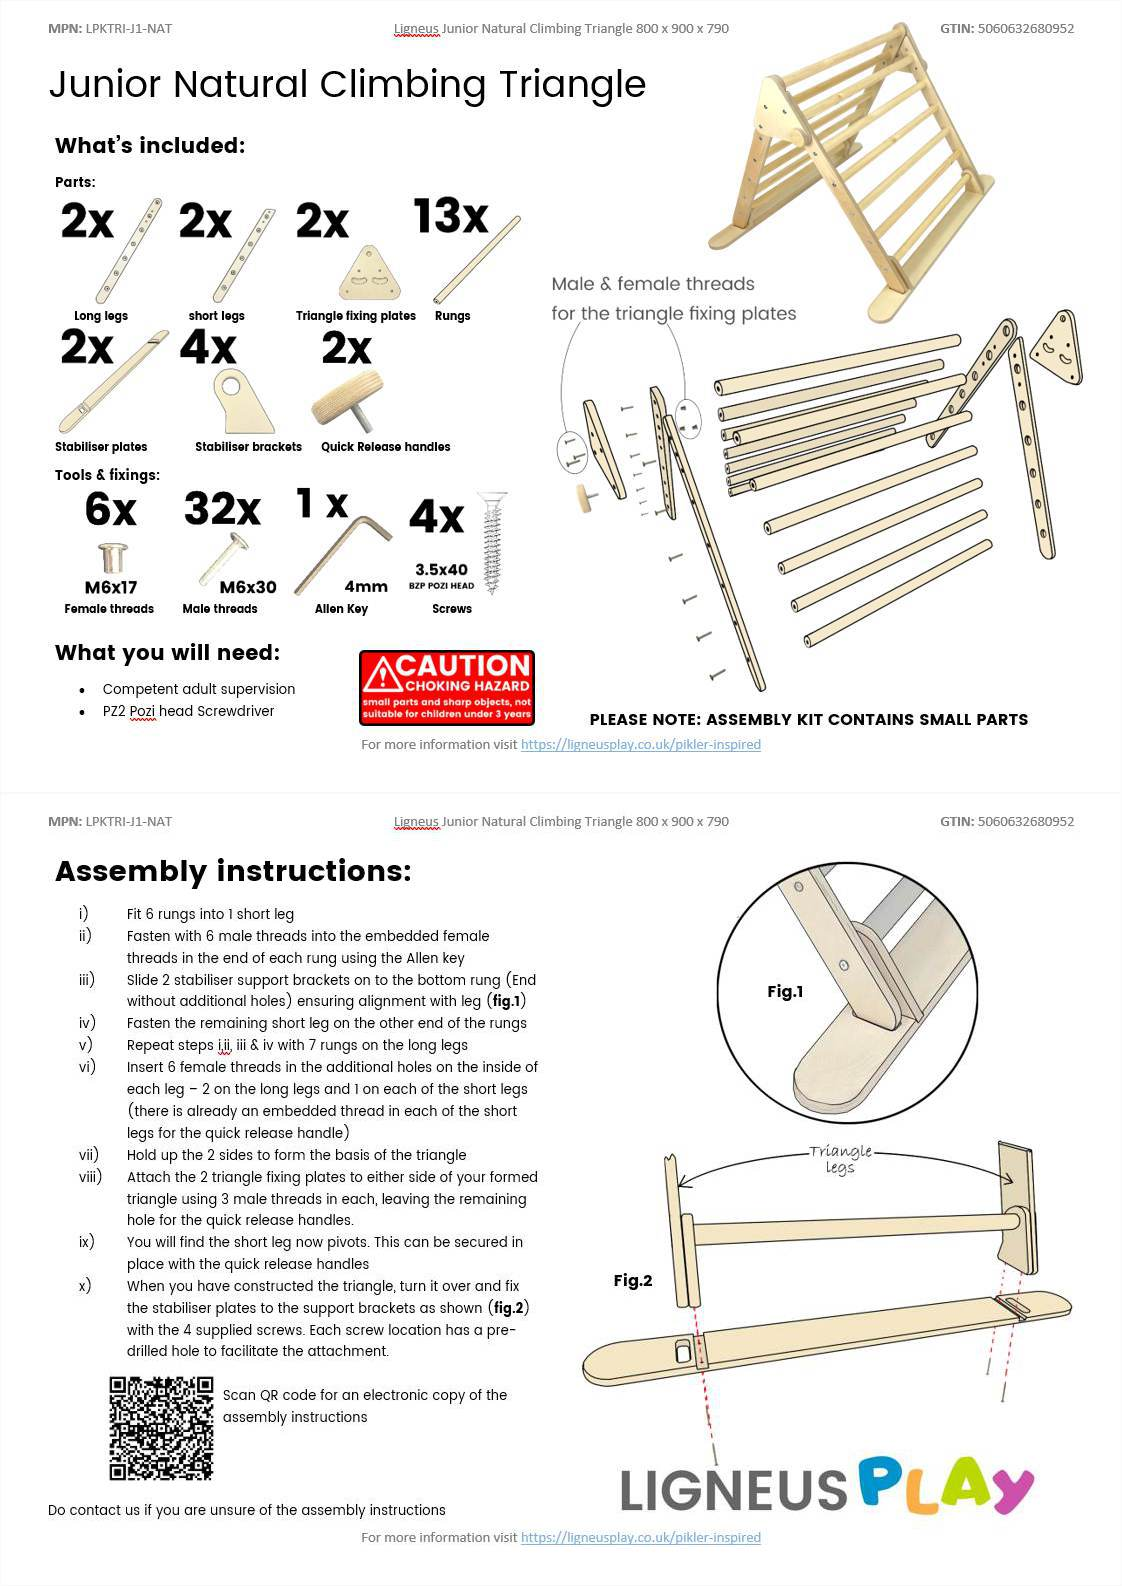 Junior Climbing Triangle Assembly Guide